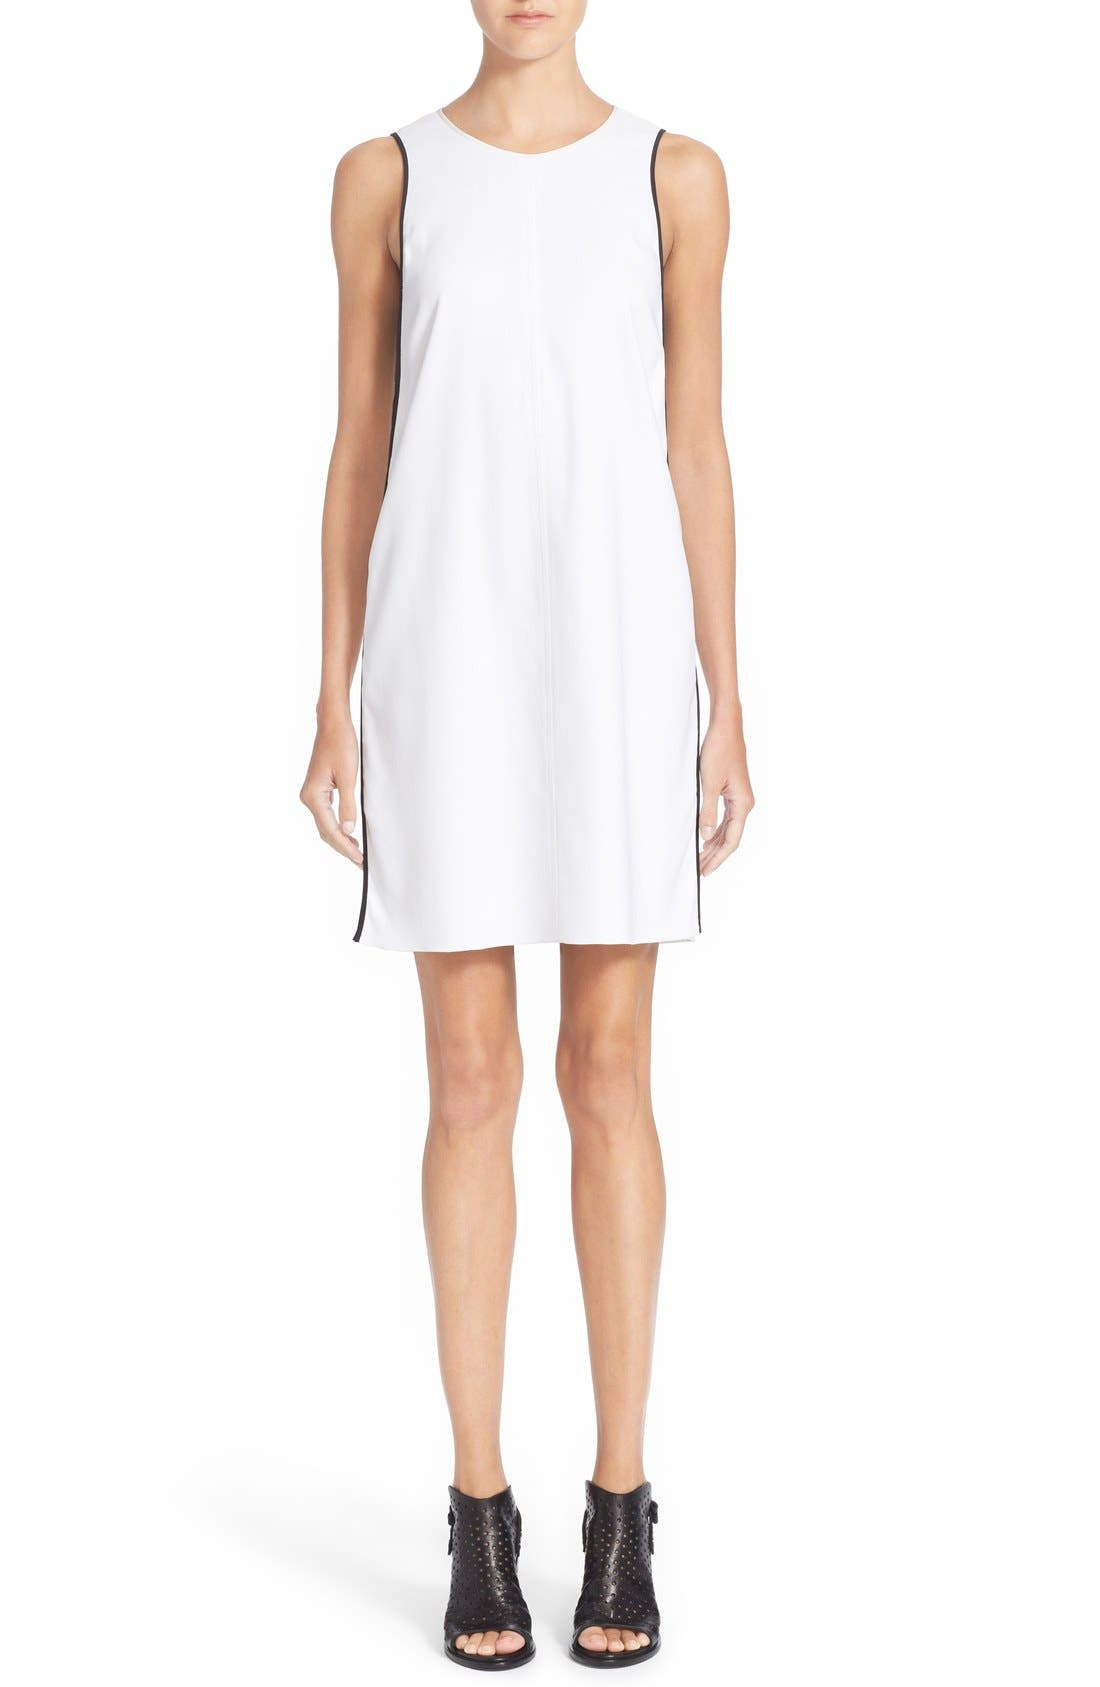 Alternate Image 1 Selected - rag & bone 'Clementine' Shift Dress